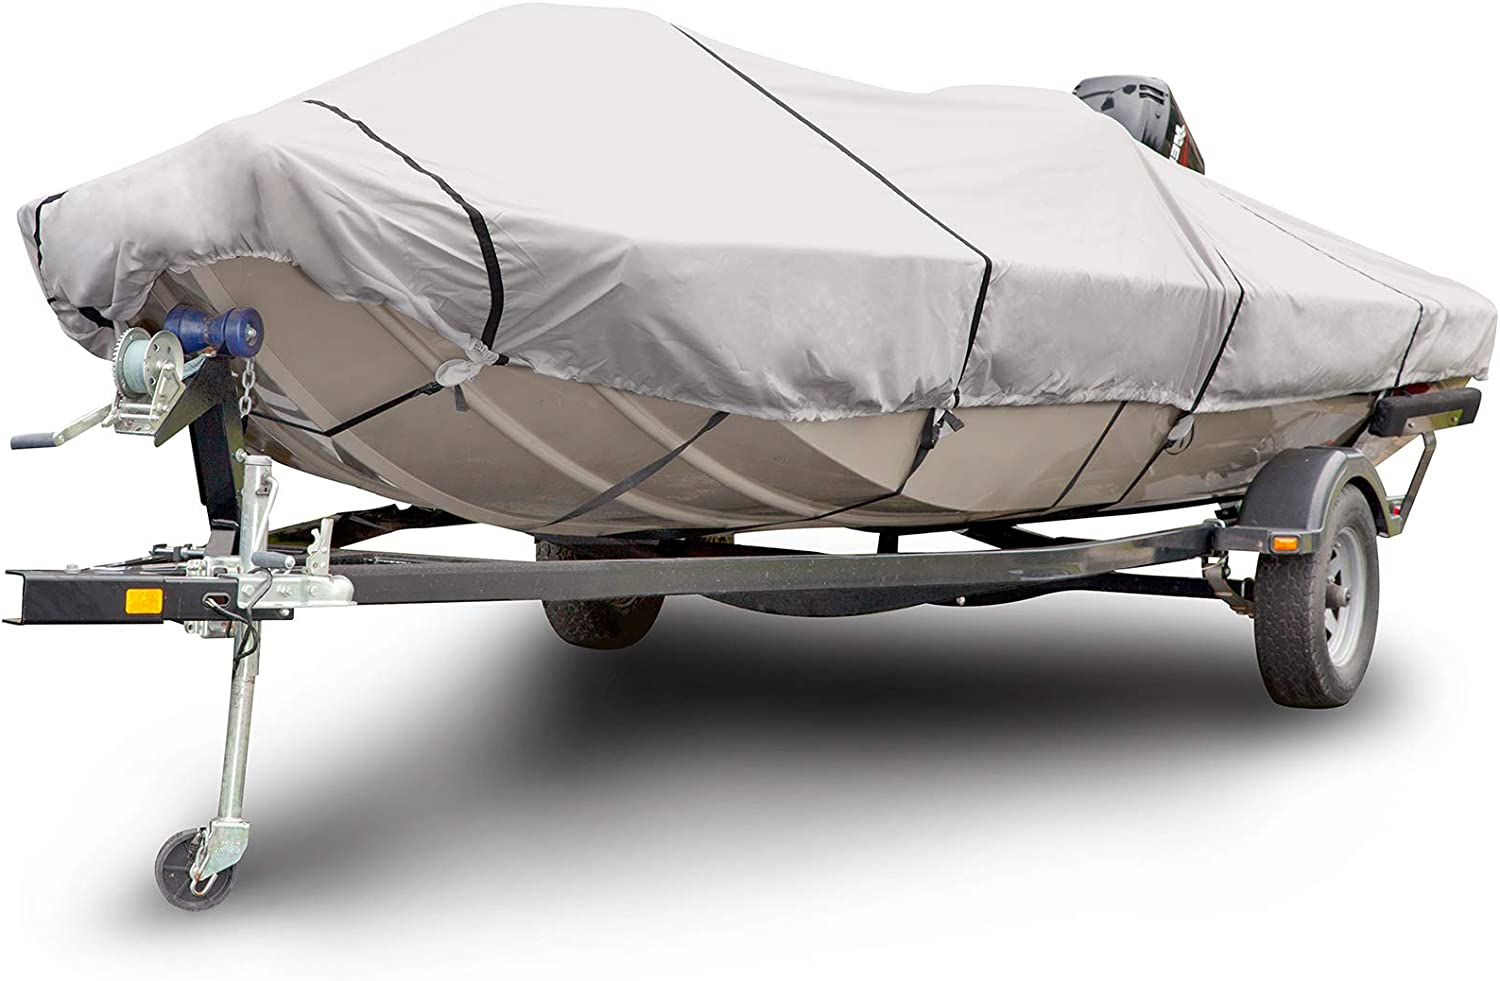 Budge 1200 Denier Boat Cover fits Center Console Flat Front/Skif